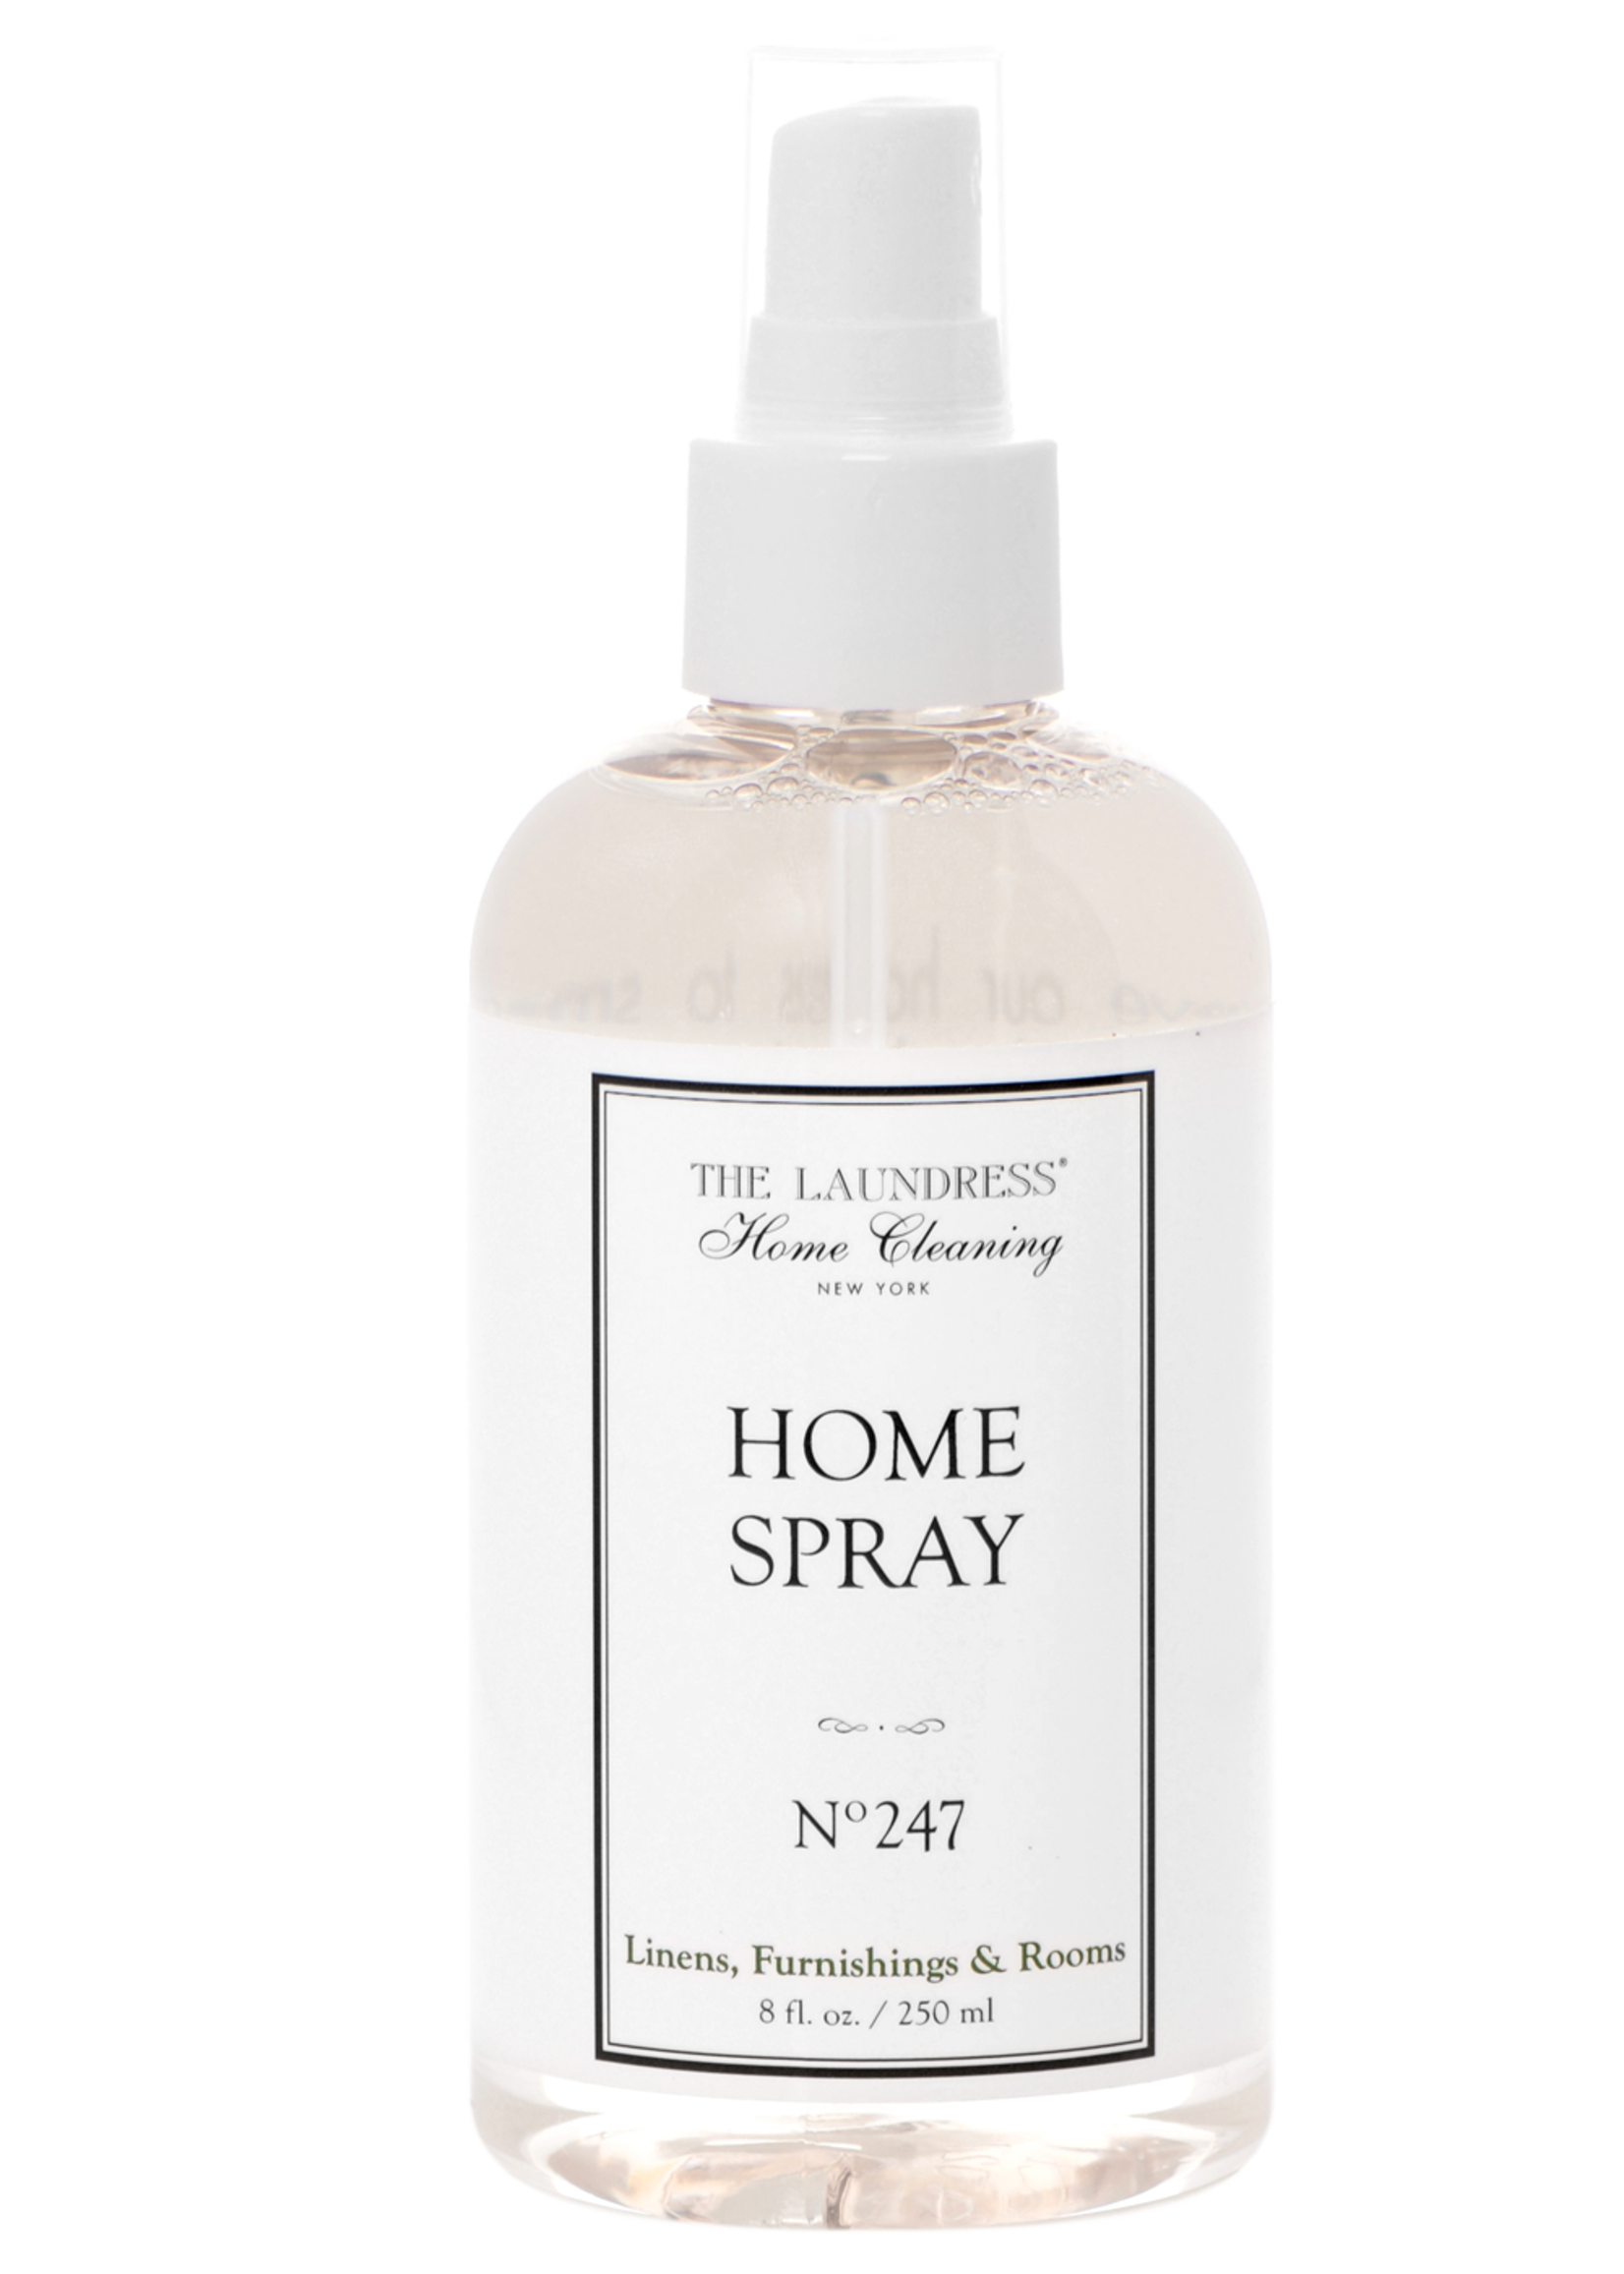 The Laundress New York Home Spray